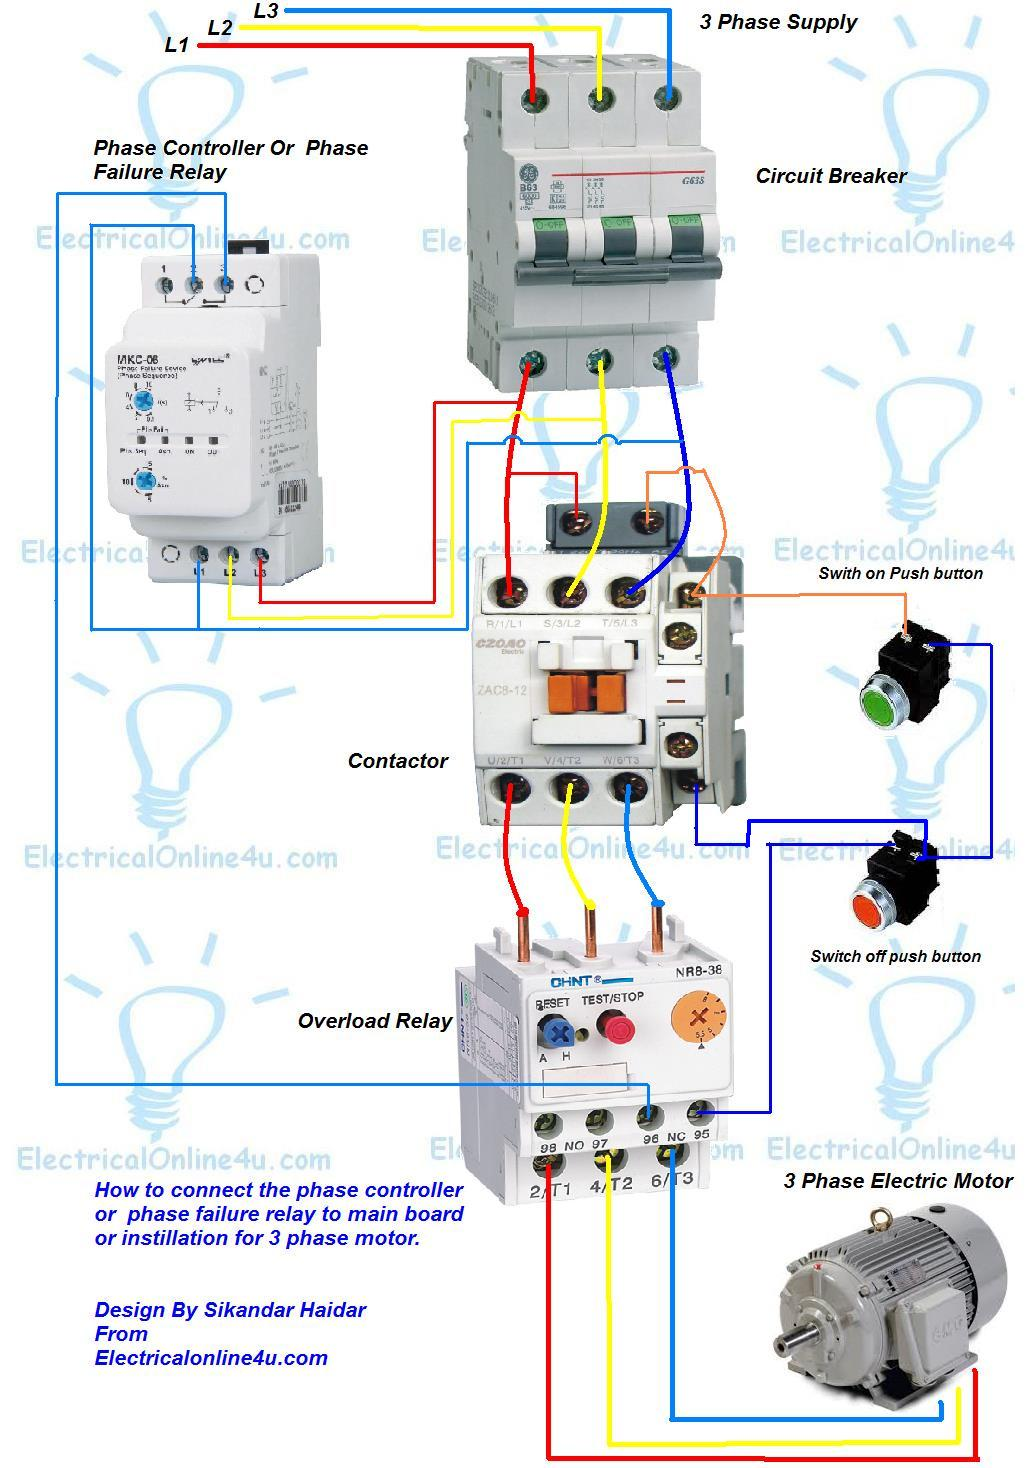 single phase water pump control panel wiring diagram jewish temple controller failure relay